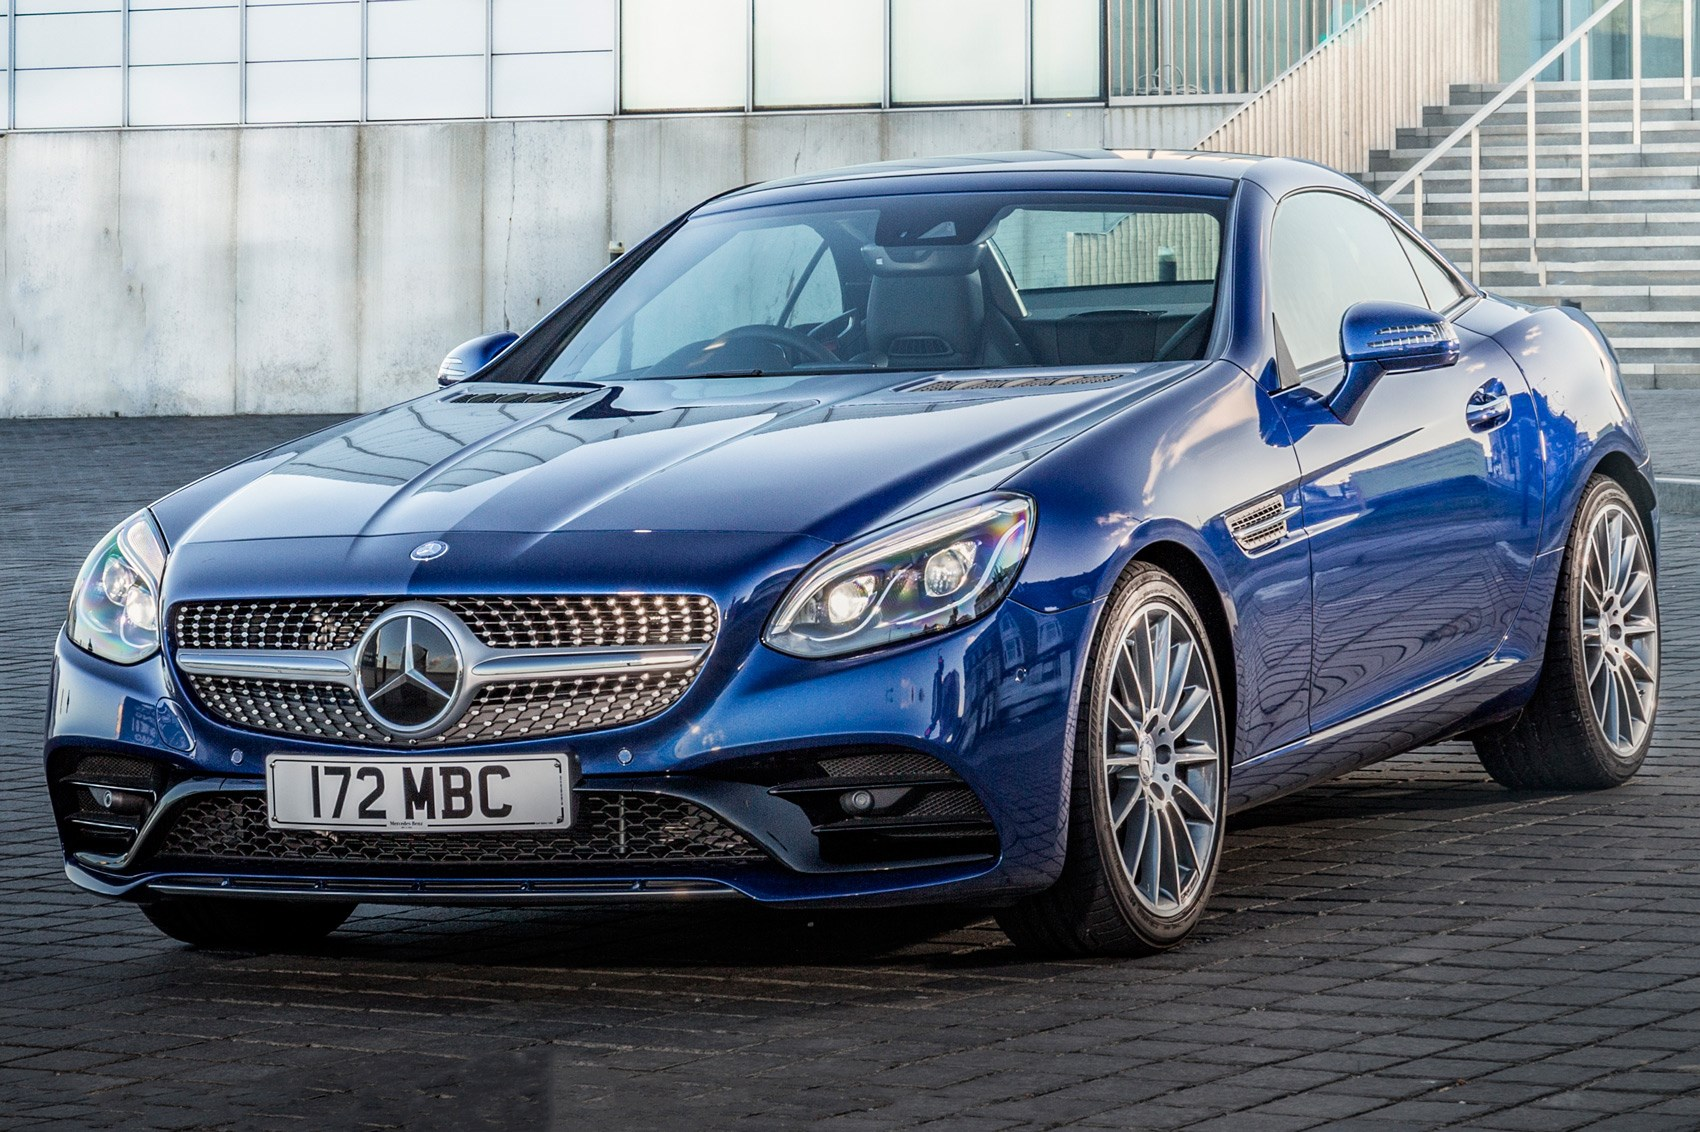 Accessible Convertible New Entrylevel Mercedes Slc 180